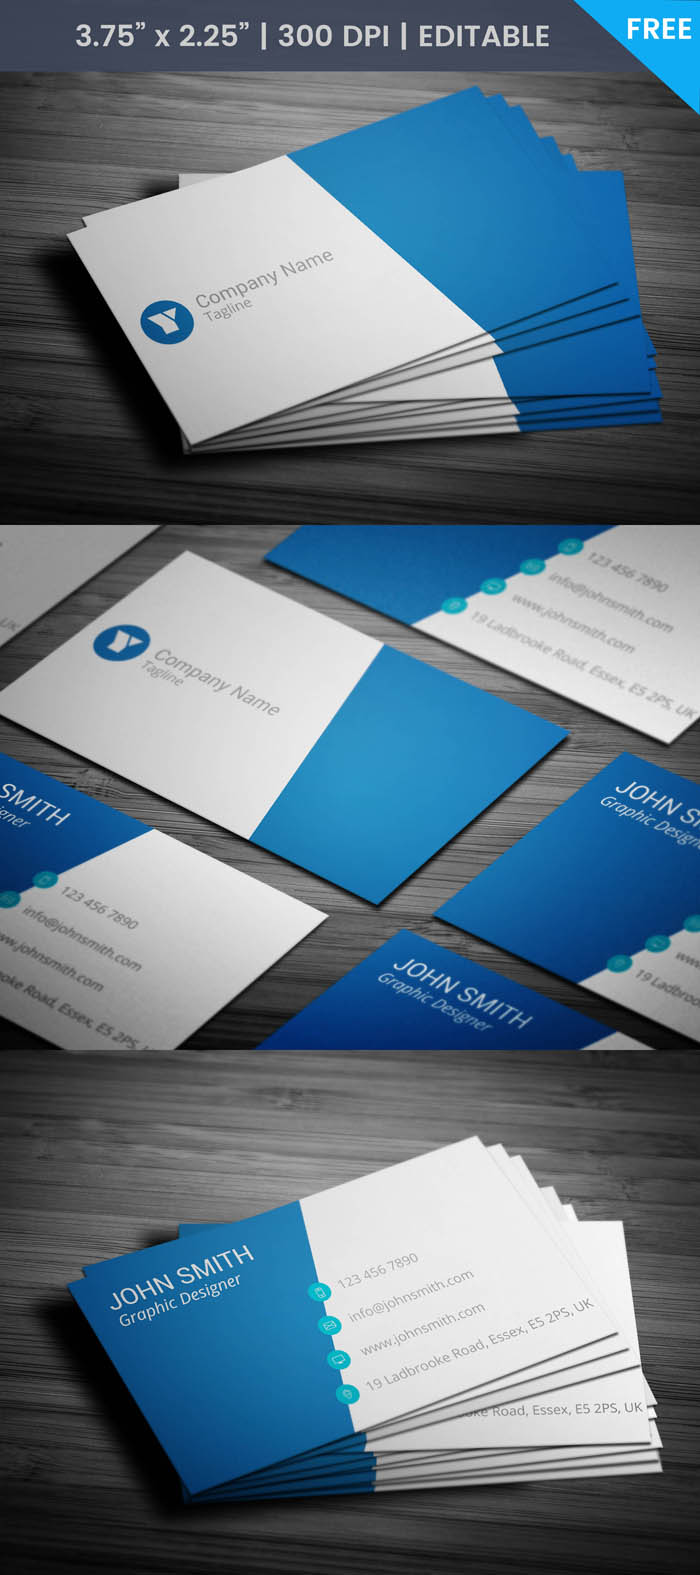 Free Corporate Event Planning Business Card Template